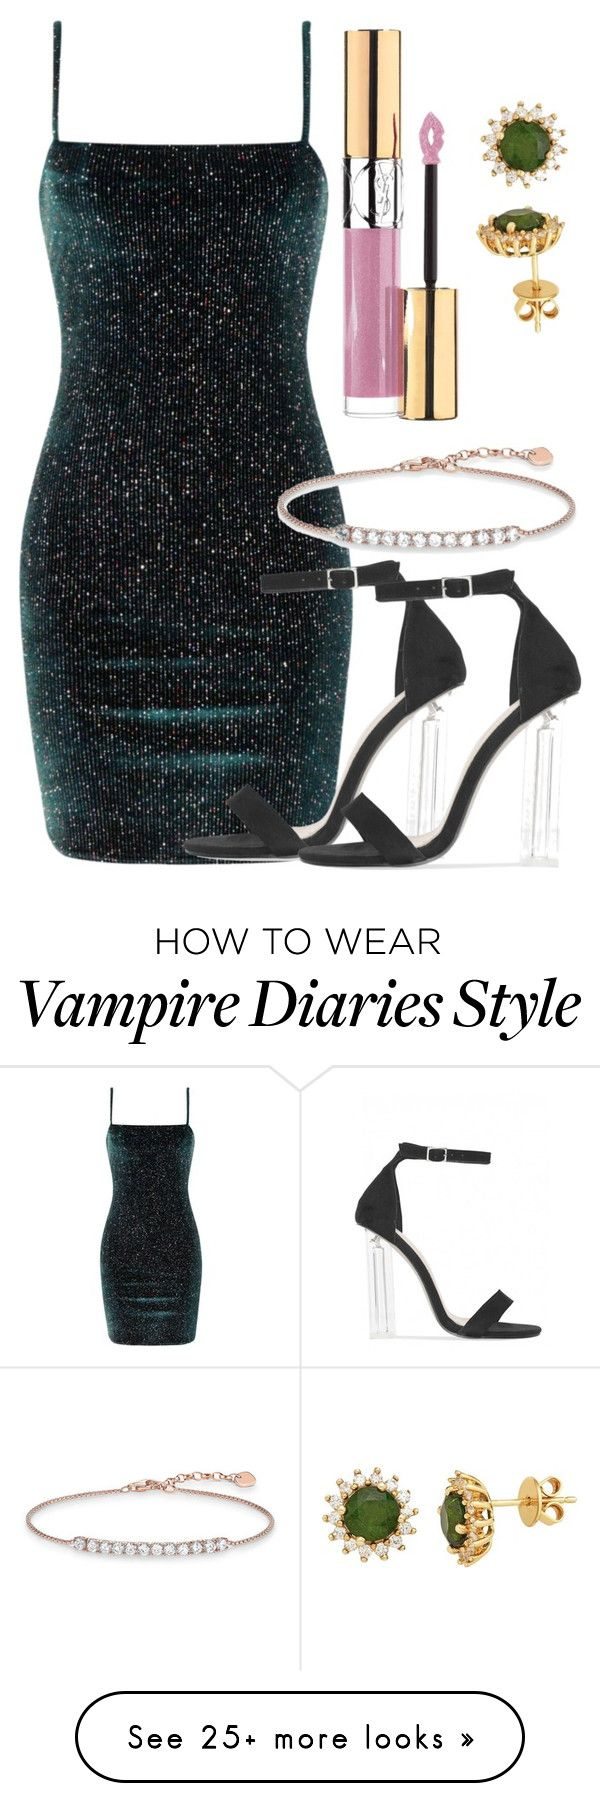 """Davina Inspired Party Outfit - The Vampire Diaries/ The Originals"" by fangsandfashion on Polyvore featuring Thomas Sabo and Yves Saint Laurent"